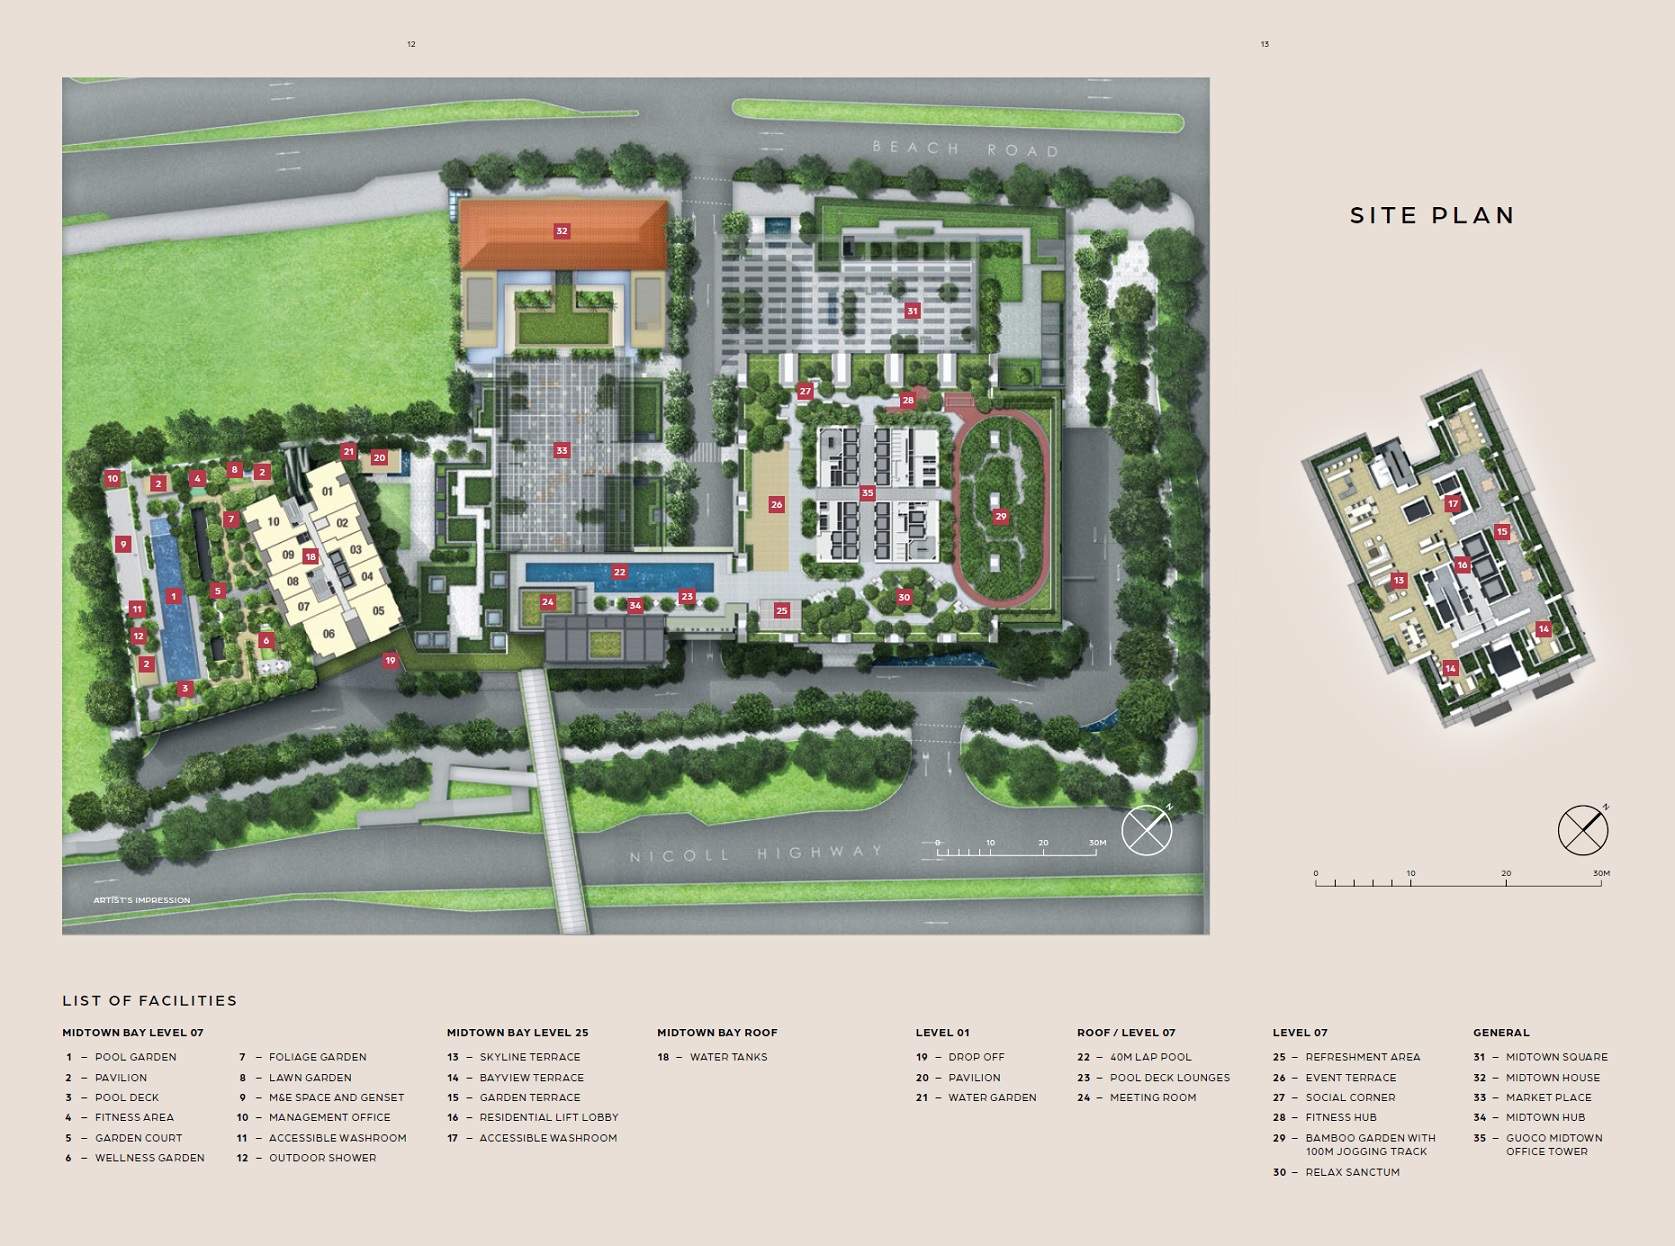 Midtown Bay Siteplan